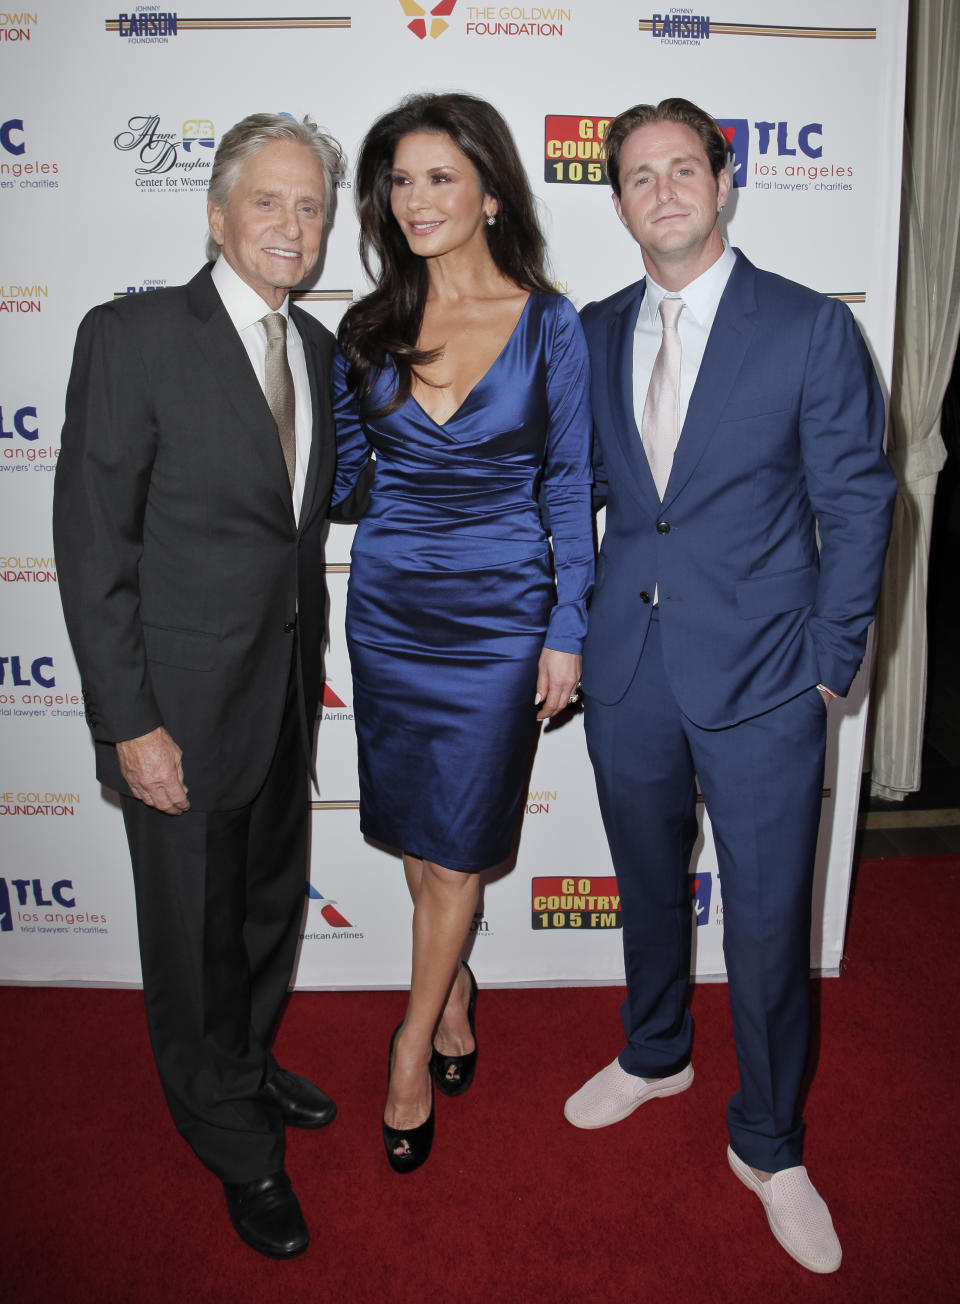 LOS ANGELES, CA - NOVEMBER 09:  (L-R) Michael Douglas, Catherine Zeta-Jones and Cameron Douglas attend the Los Angeles Mission Legacy of Vision Gala at Four Seasons Hotel Los Angeles at Beverly Hills on November 9, 2017 in Los Angeles, California.  (Photo by Tibrina Hobson/Getty Images)